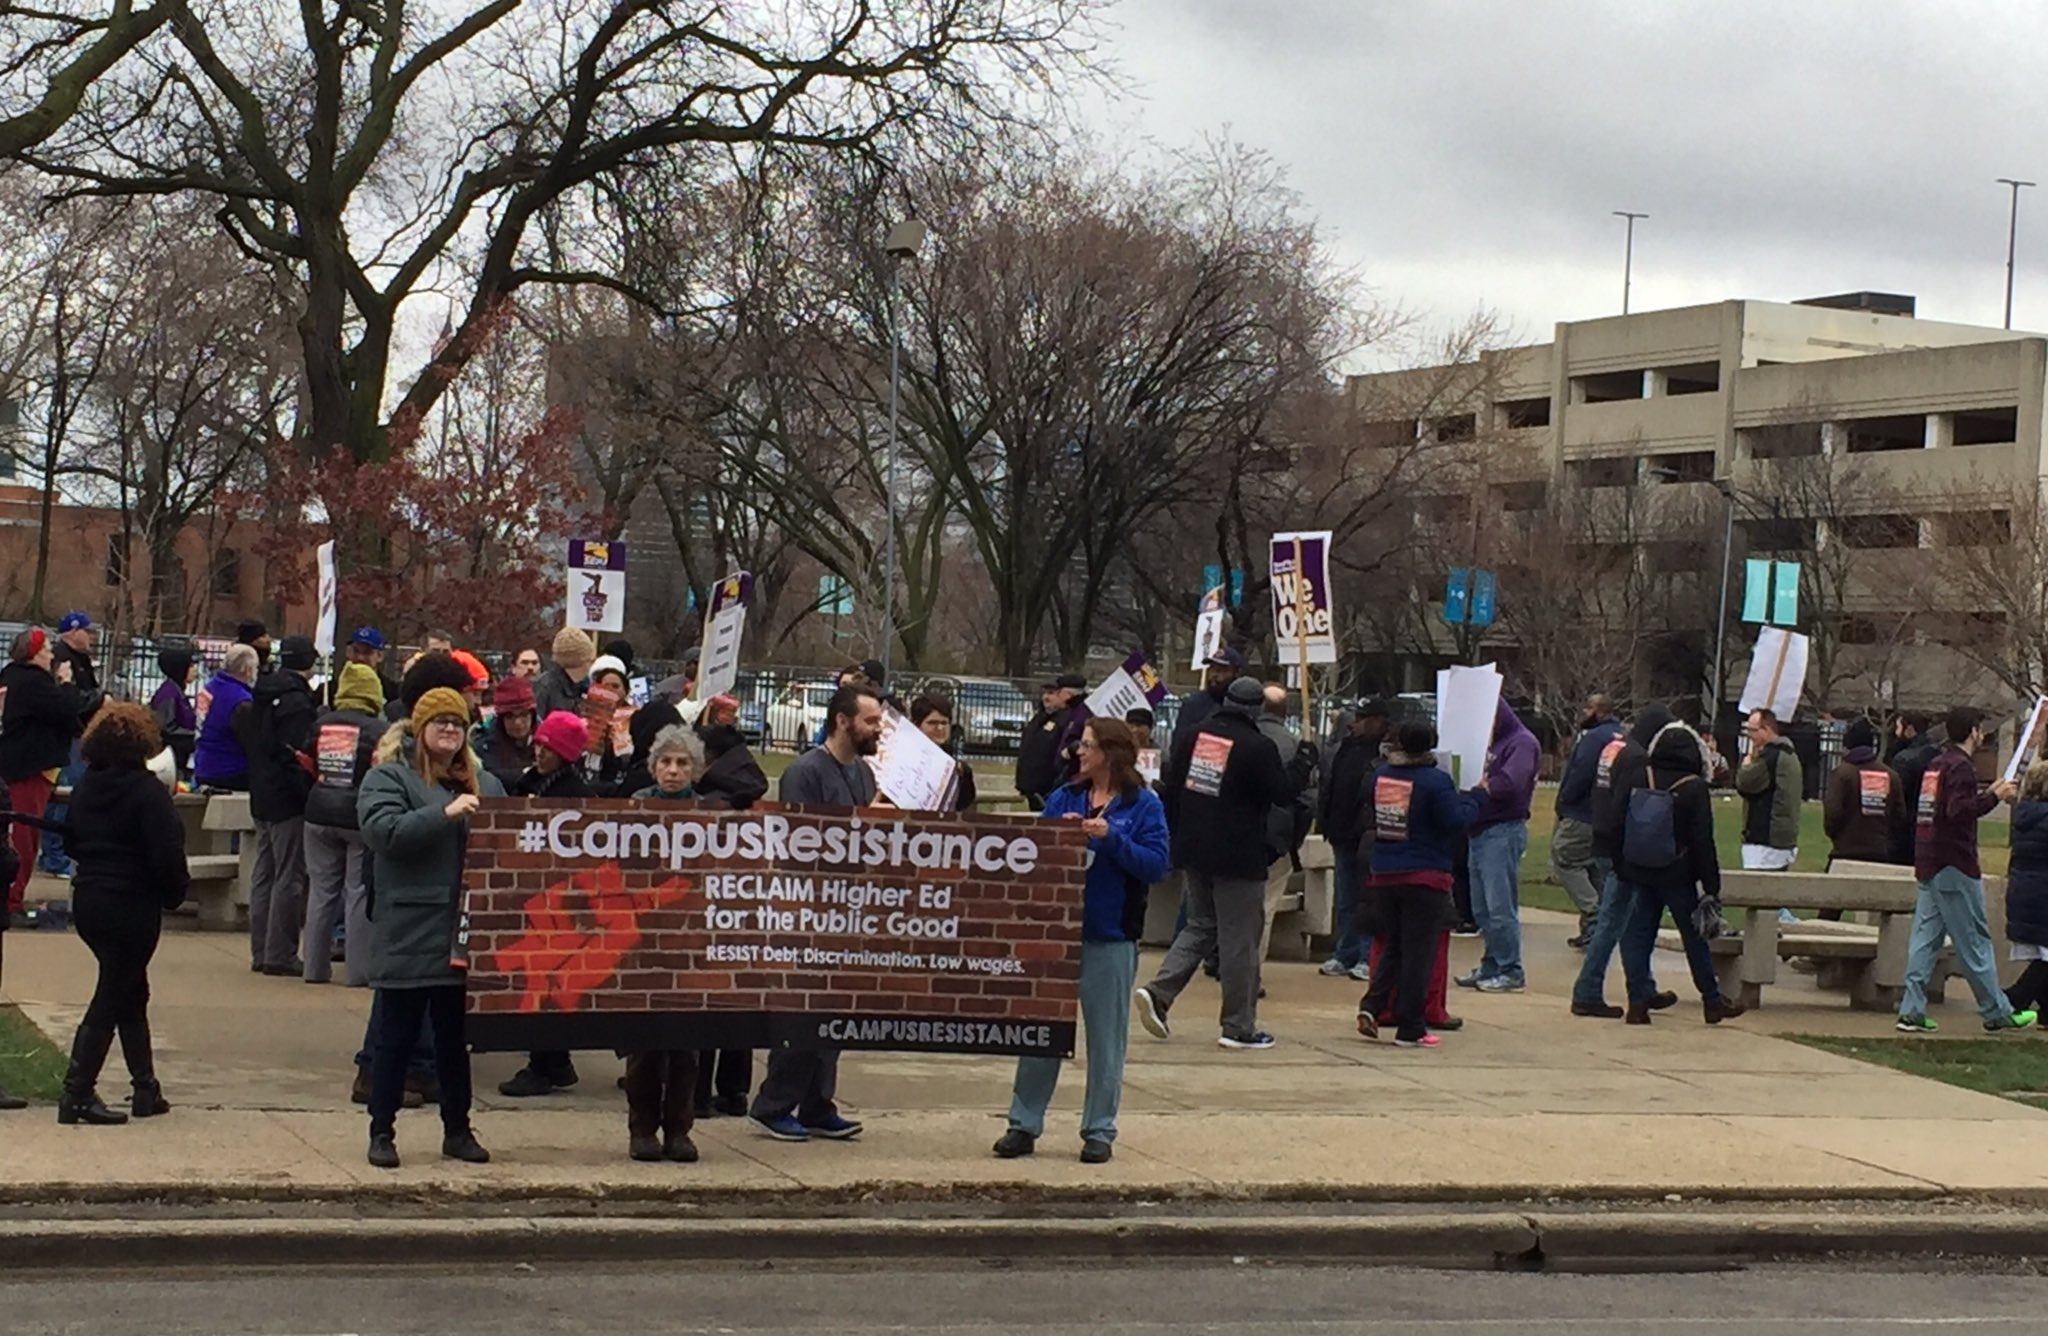 Wrapping up #CampusResistance at UIC with chants of 'we'll be back'! Next up...Loyola-c u there 4pm outside Cudahy Hall https://t.co/WhxTB7OHAT